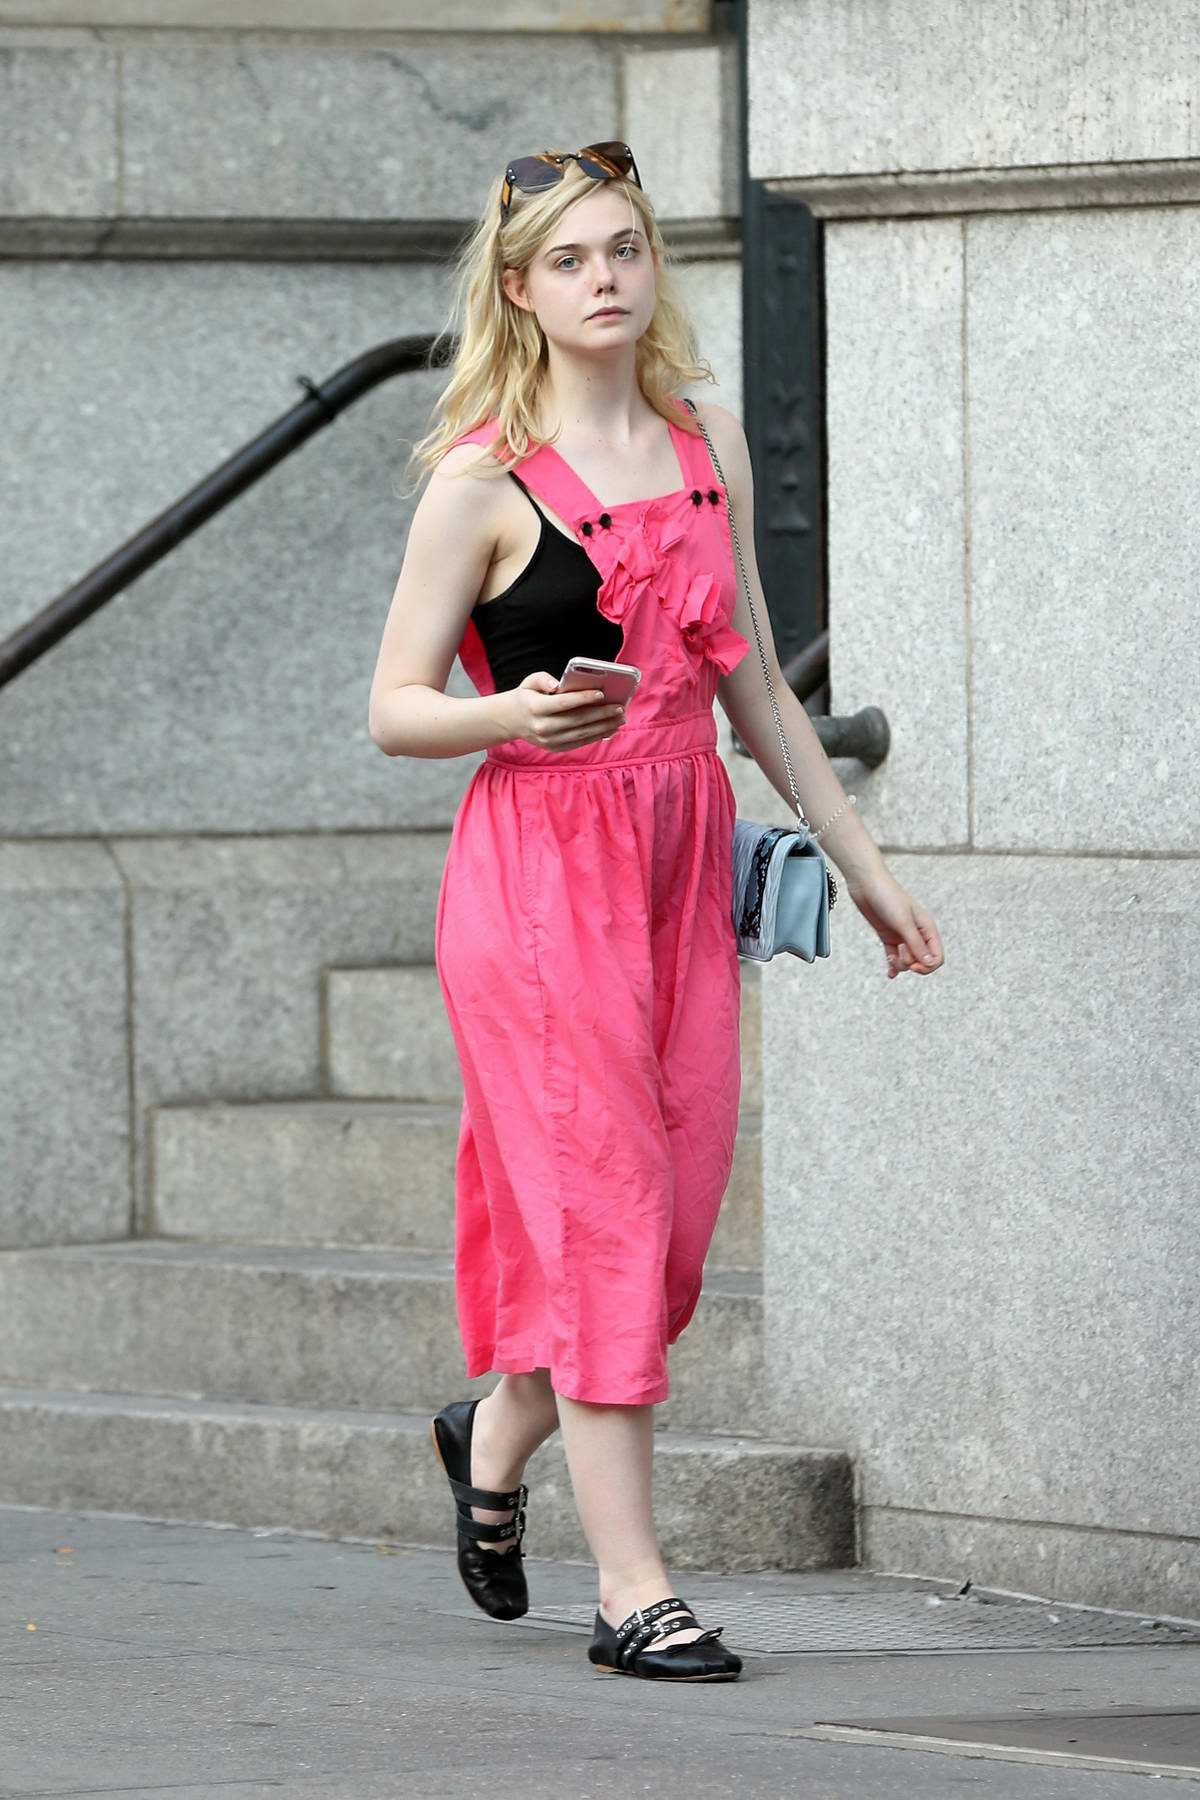 Elle Fanning wearing pink overall with black top returns home in Soho in New York City